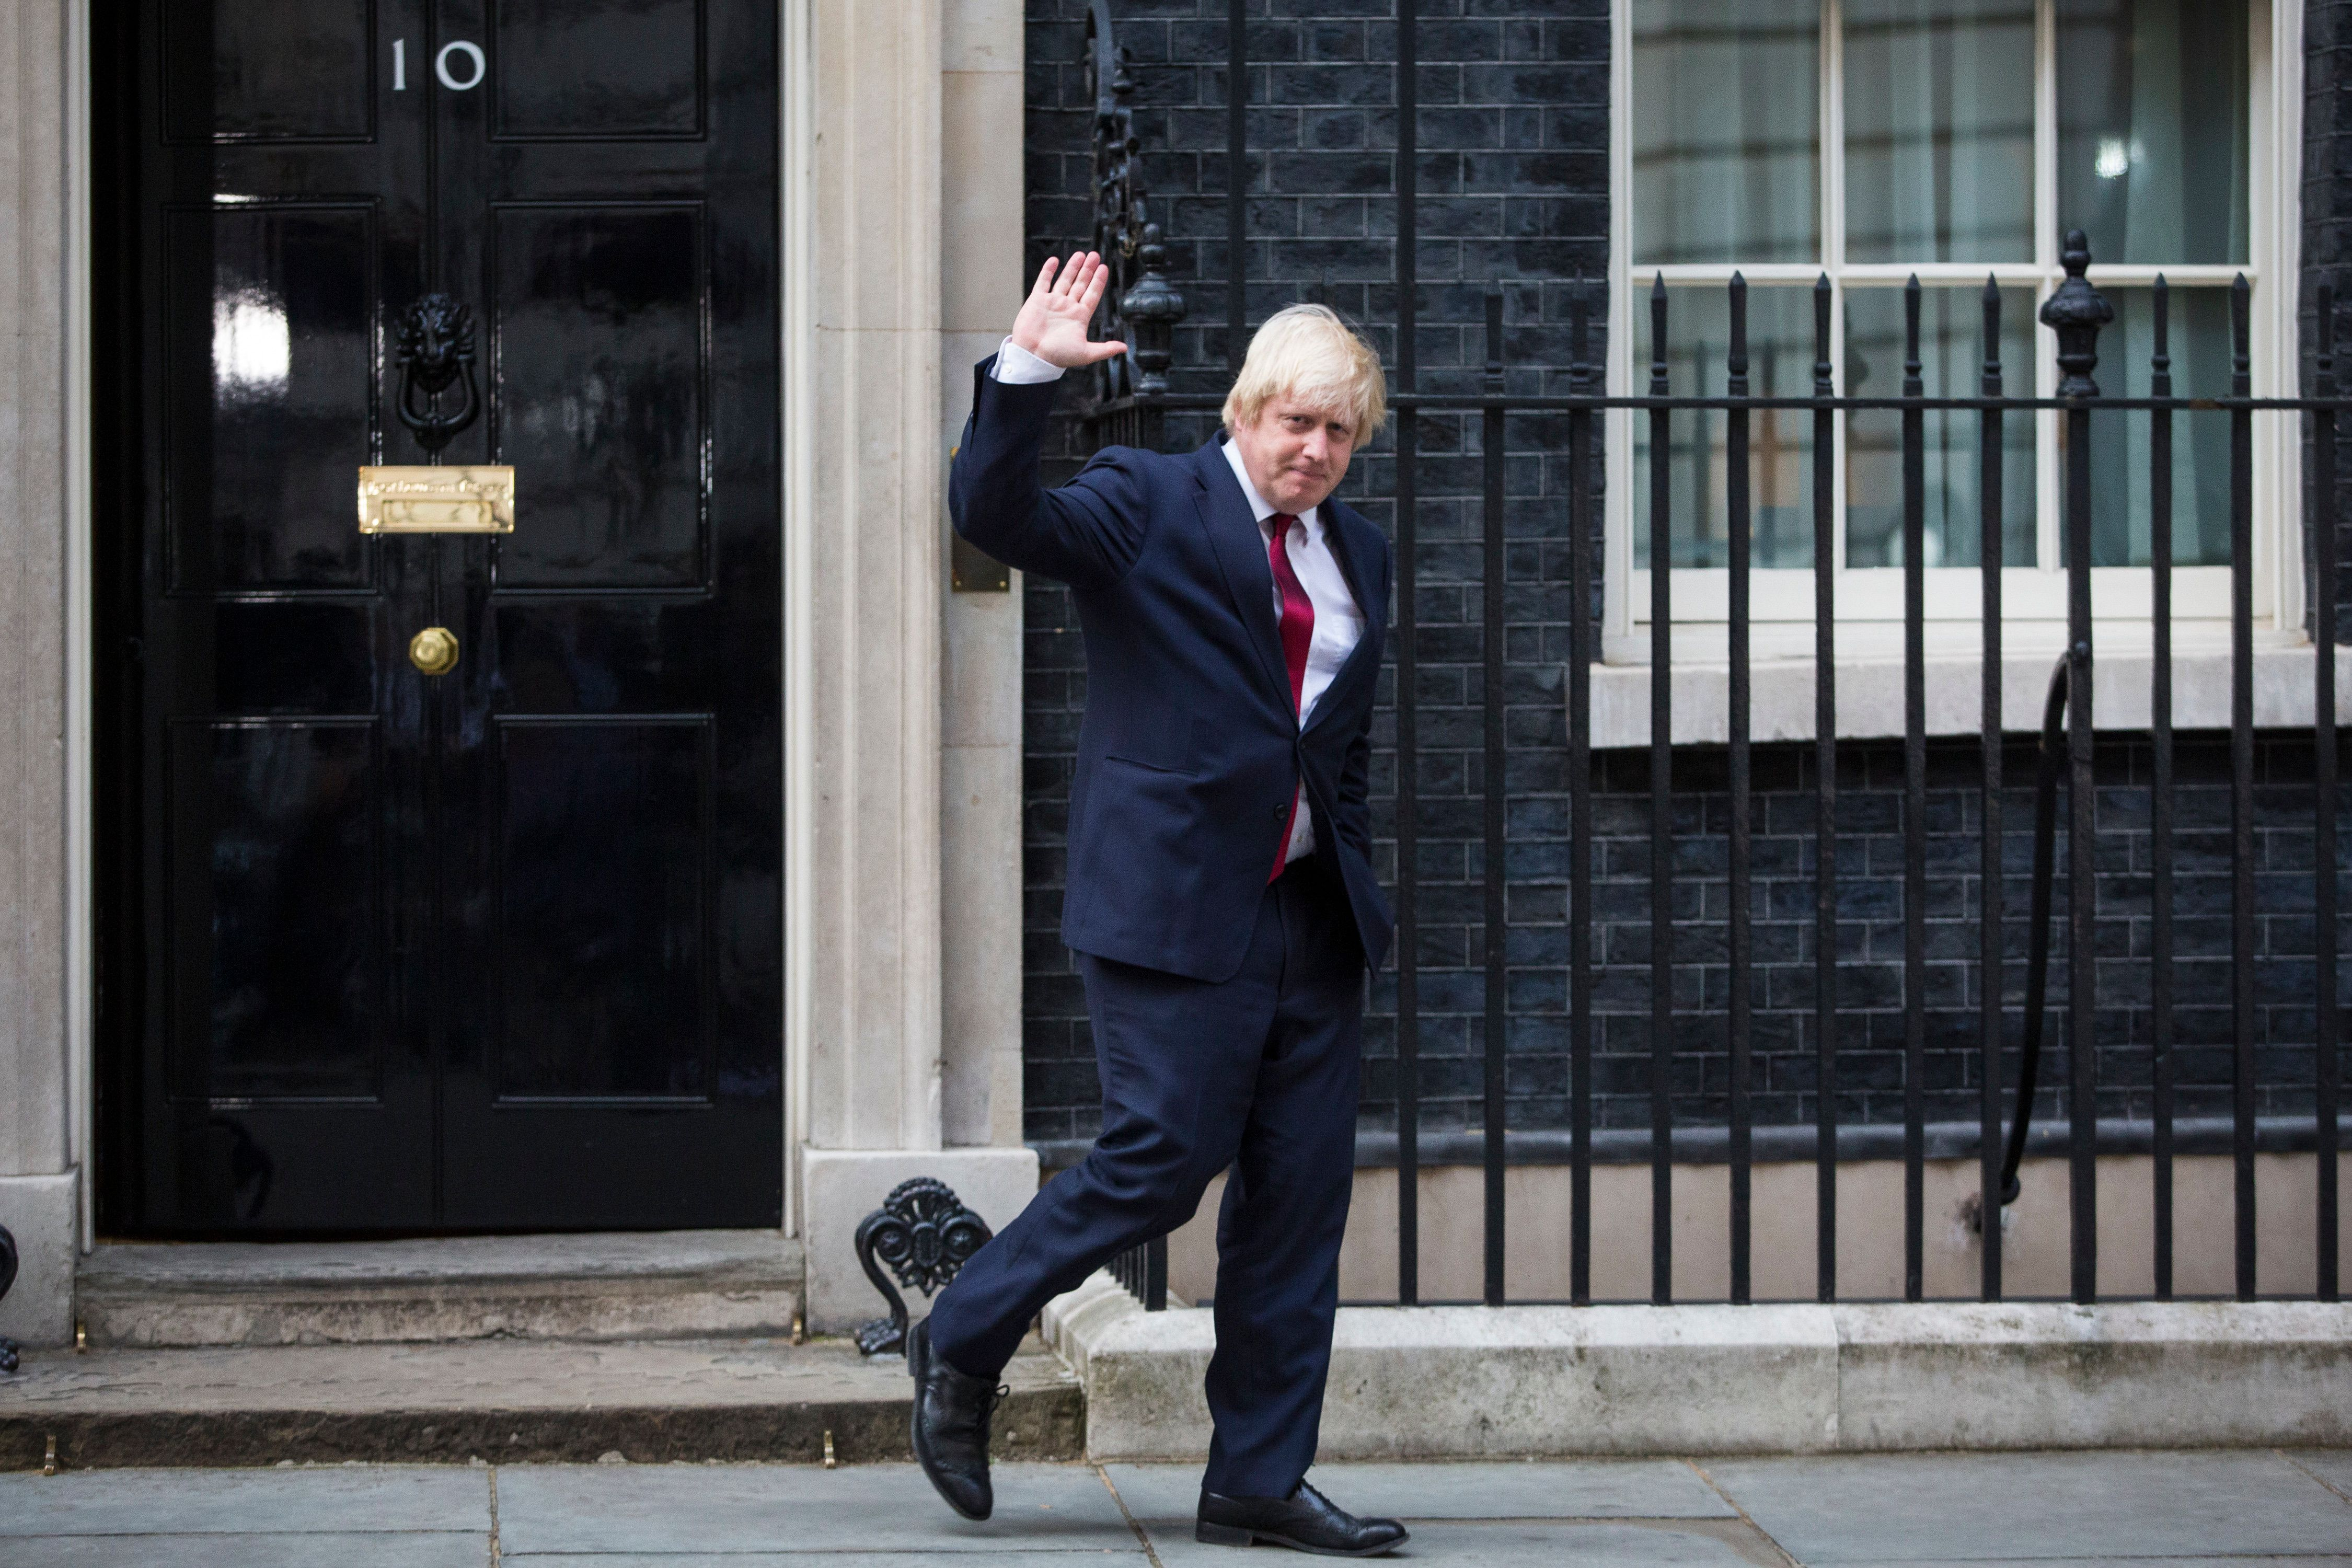 Boris Johnson waves as he leaves Downing Street after being appointed foreign